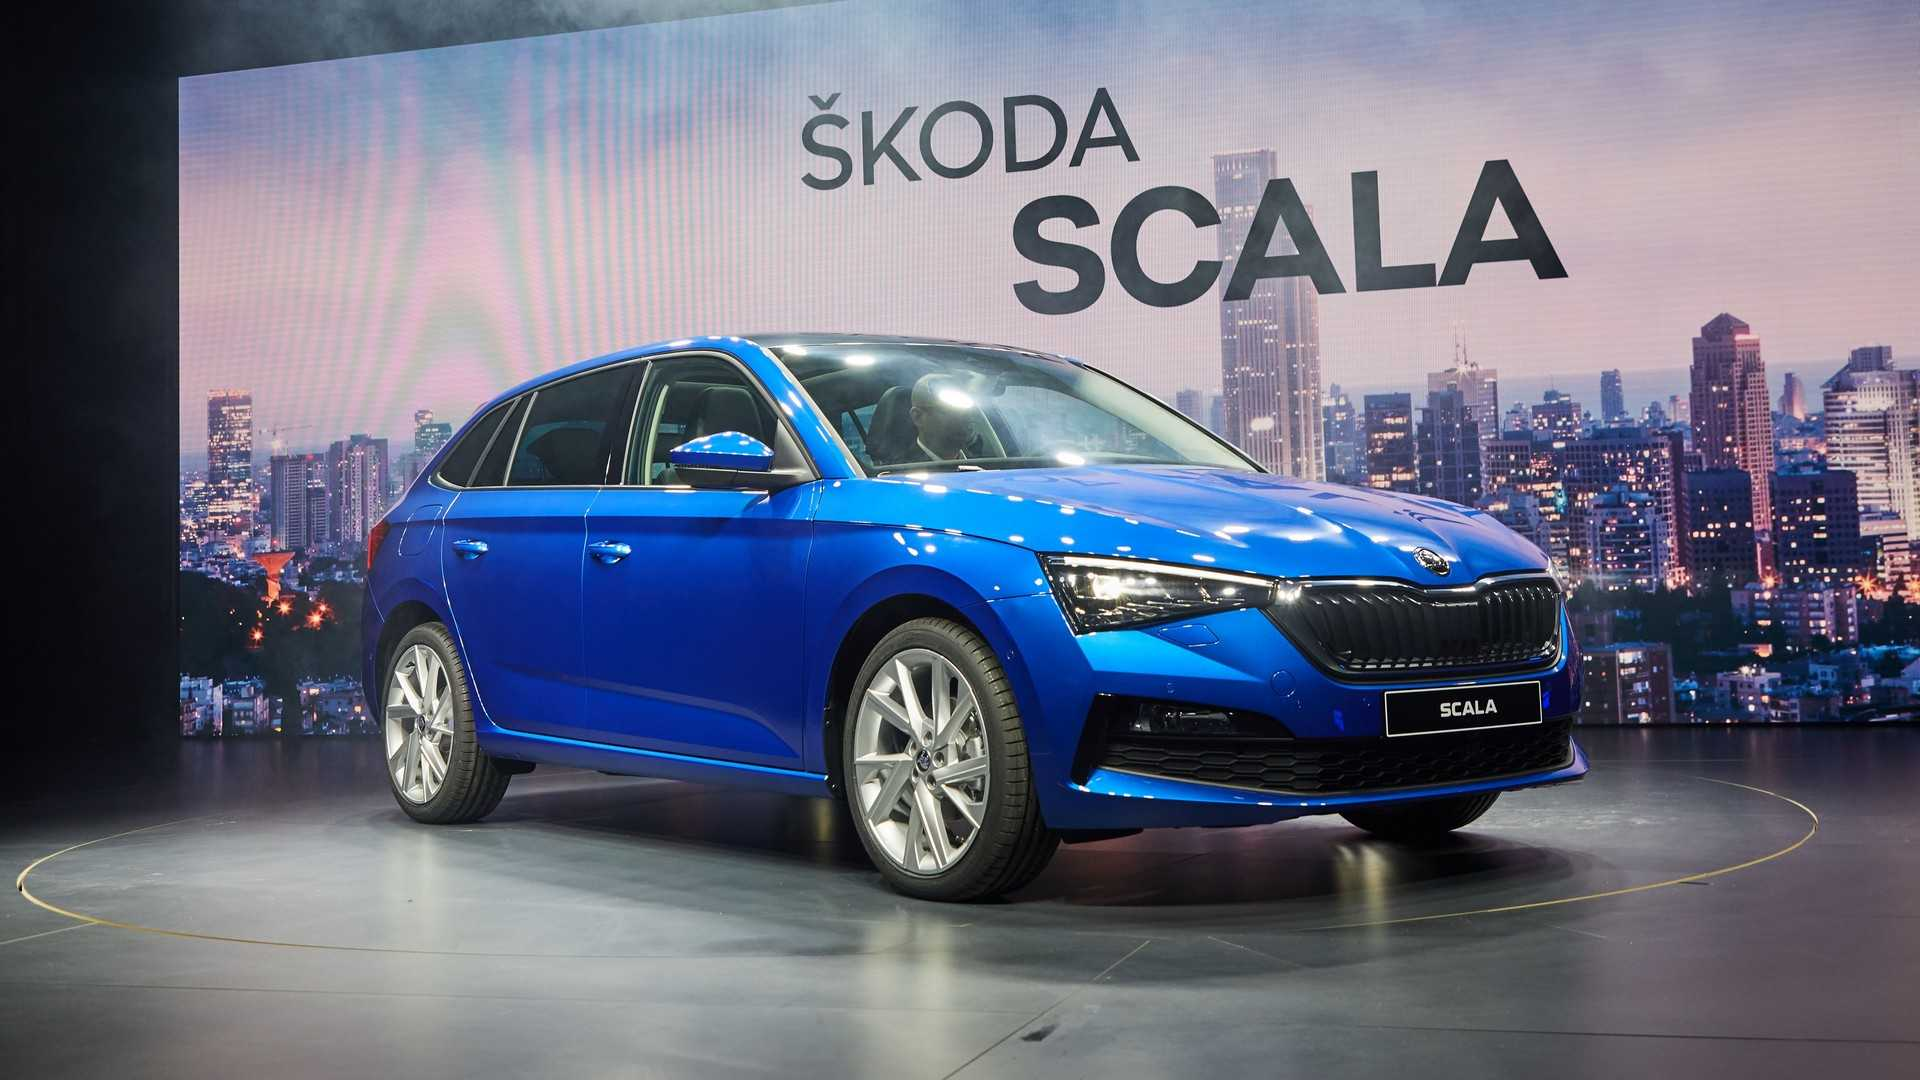 2019 Skoda Scala Revealed To Rival VW Golf And Ford Focus 1920x1080